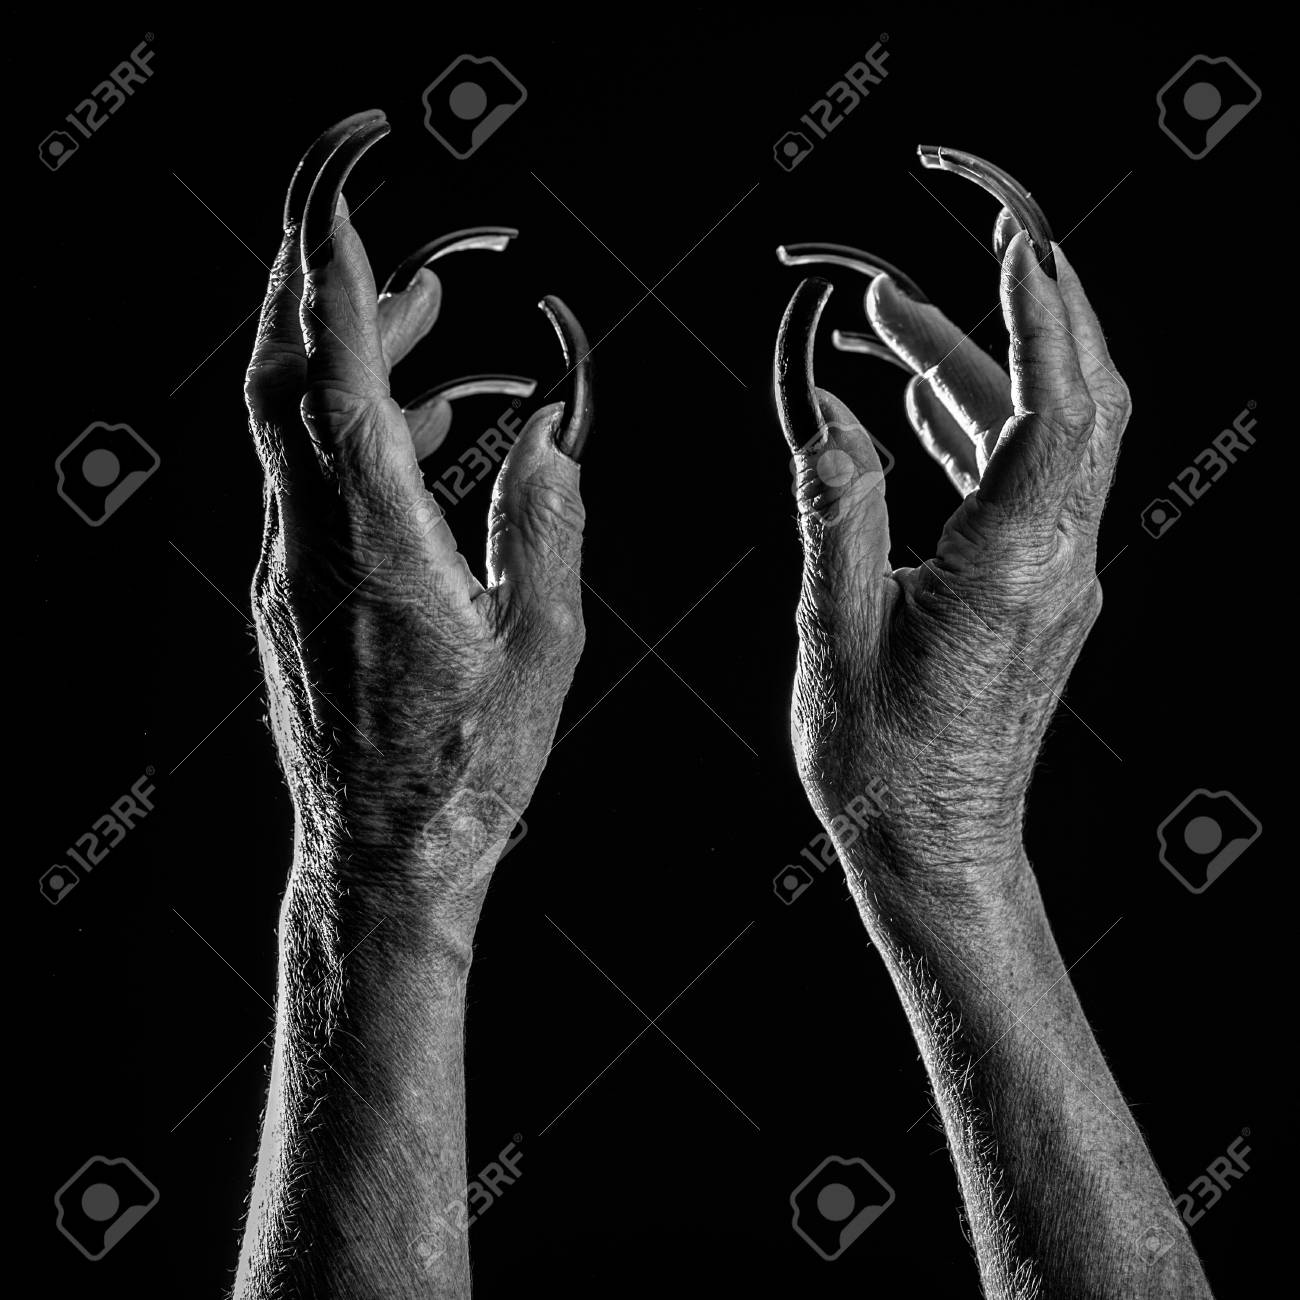 Horror Movie Old Female Hands With Long Nails Stock Photo Picture